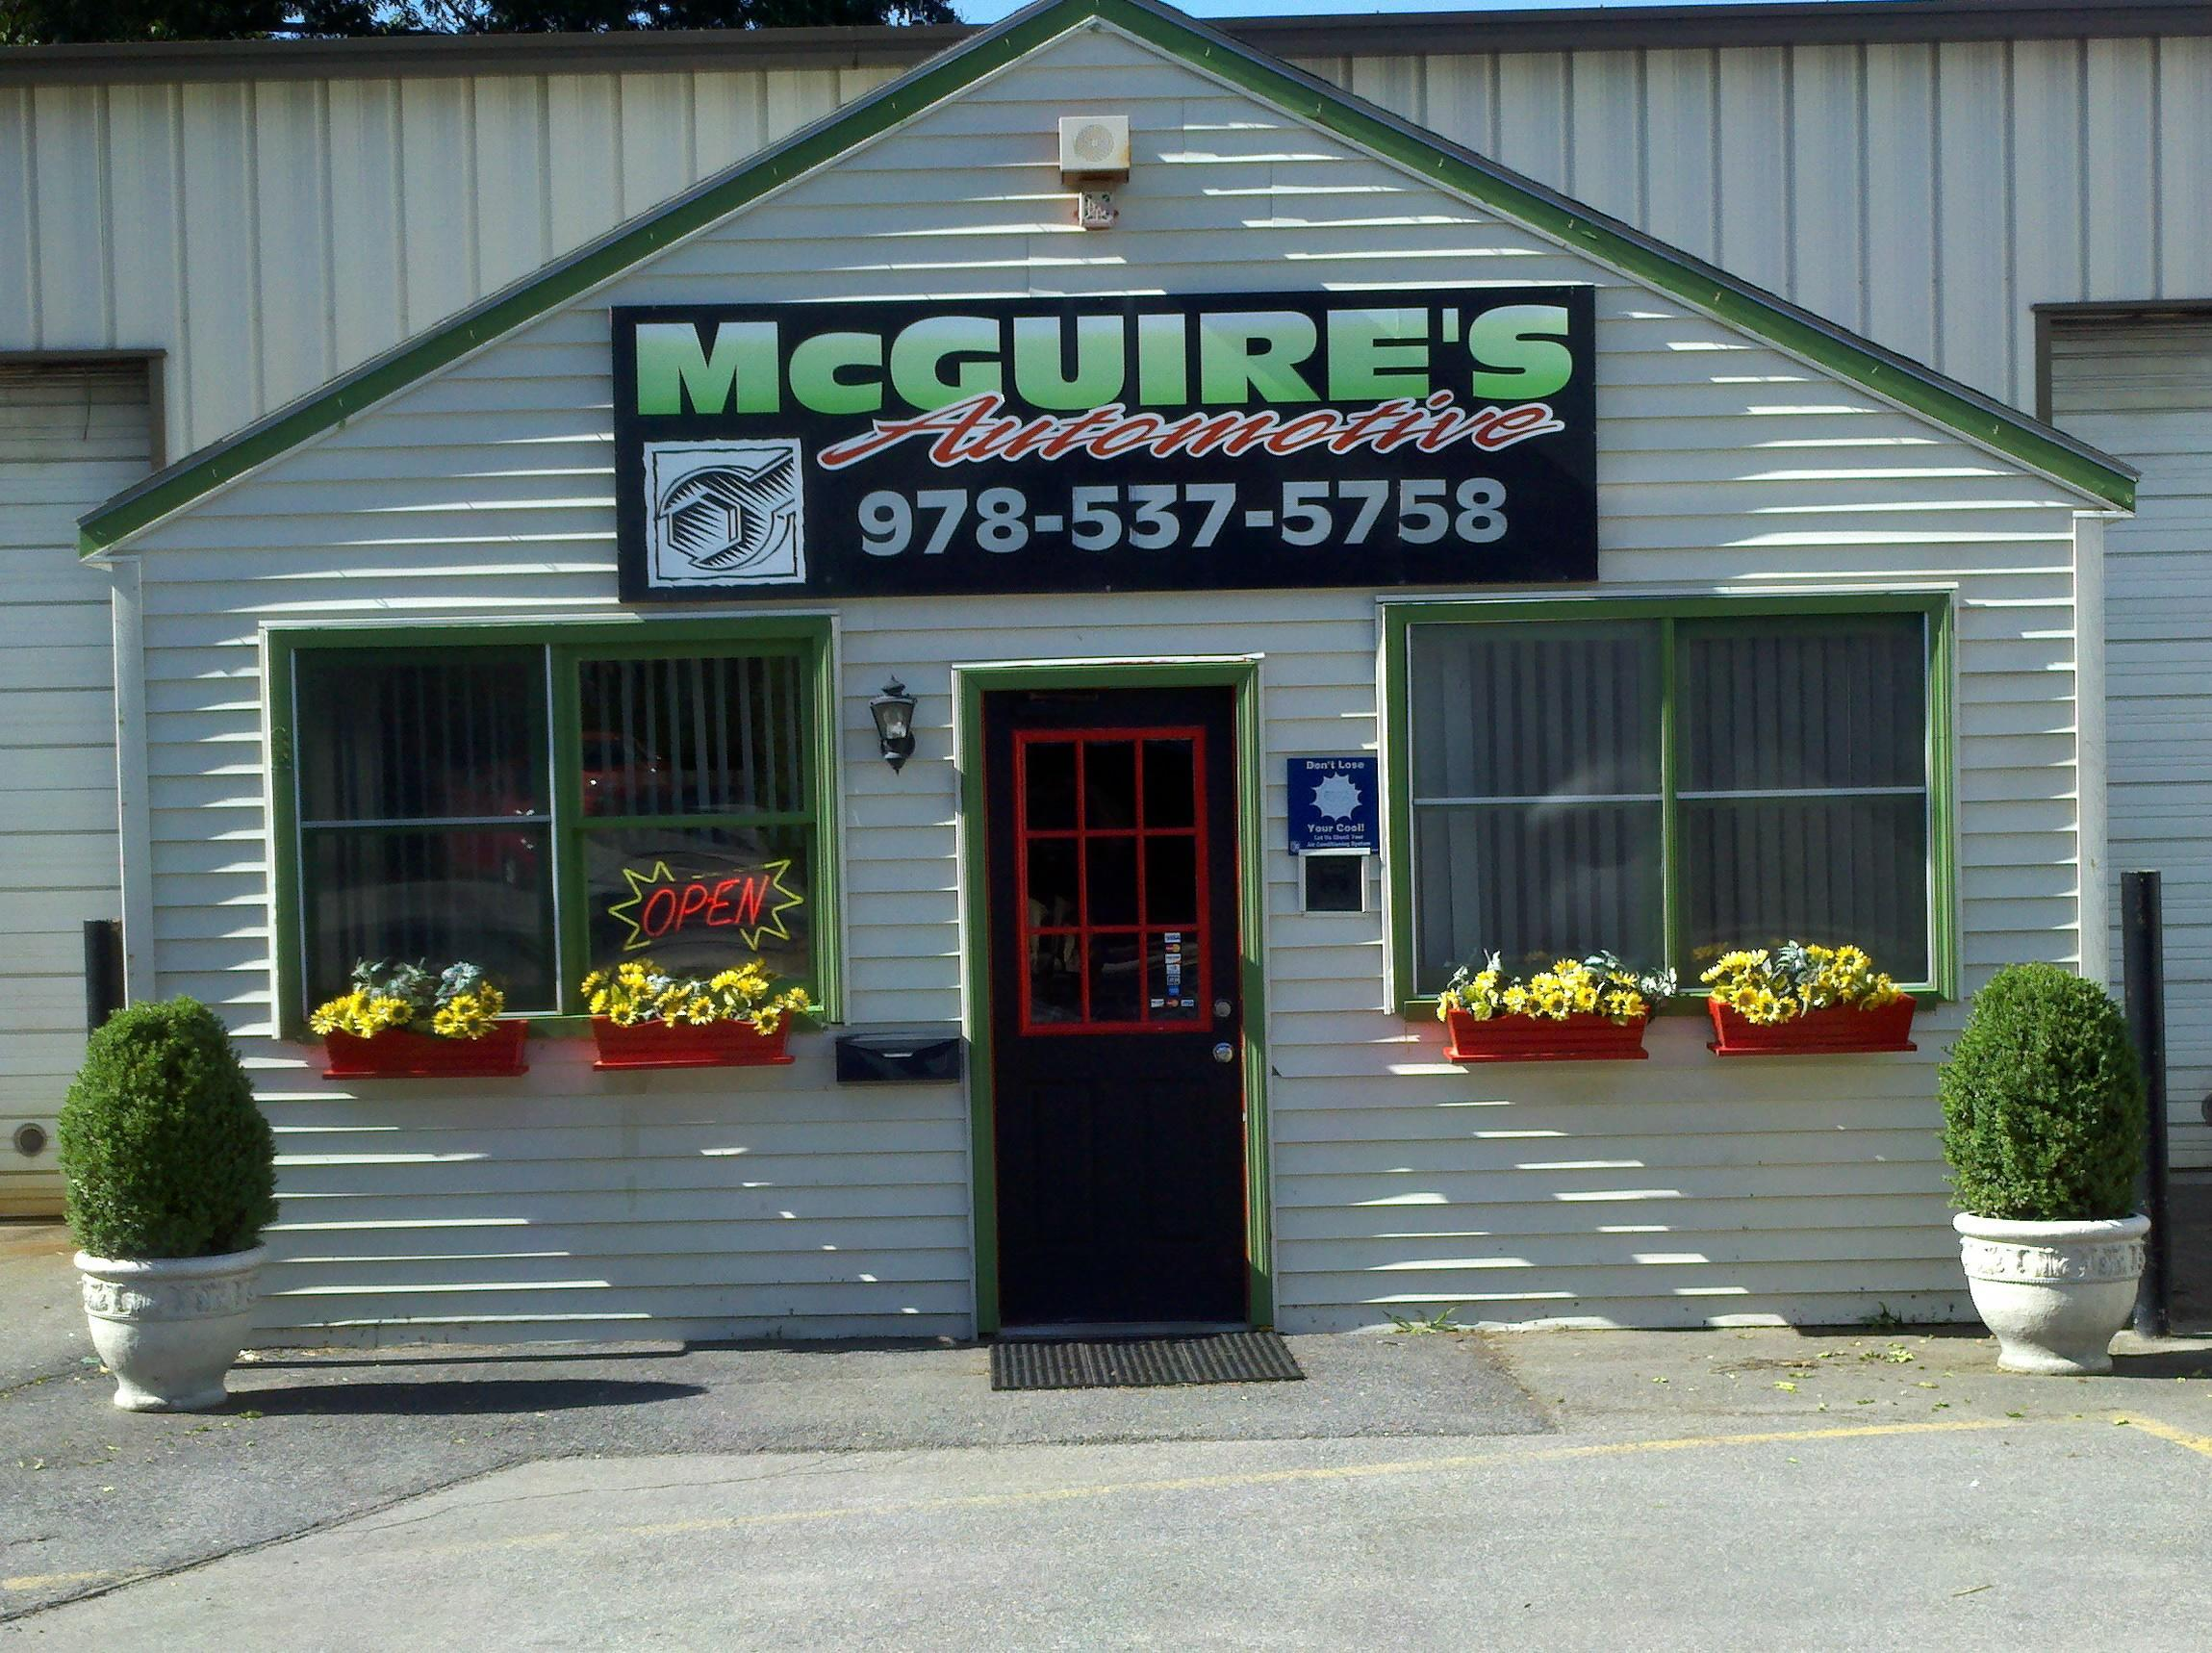 Mcguires automotive in leominster ma 01453 for North main motors leominster ma